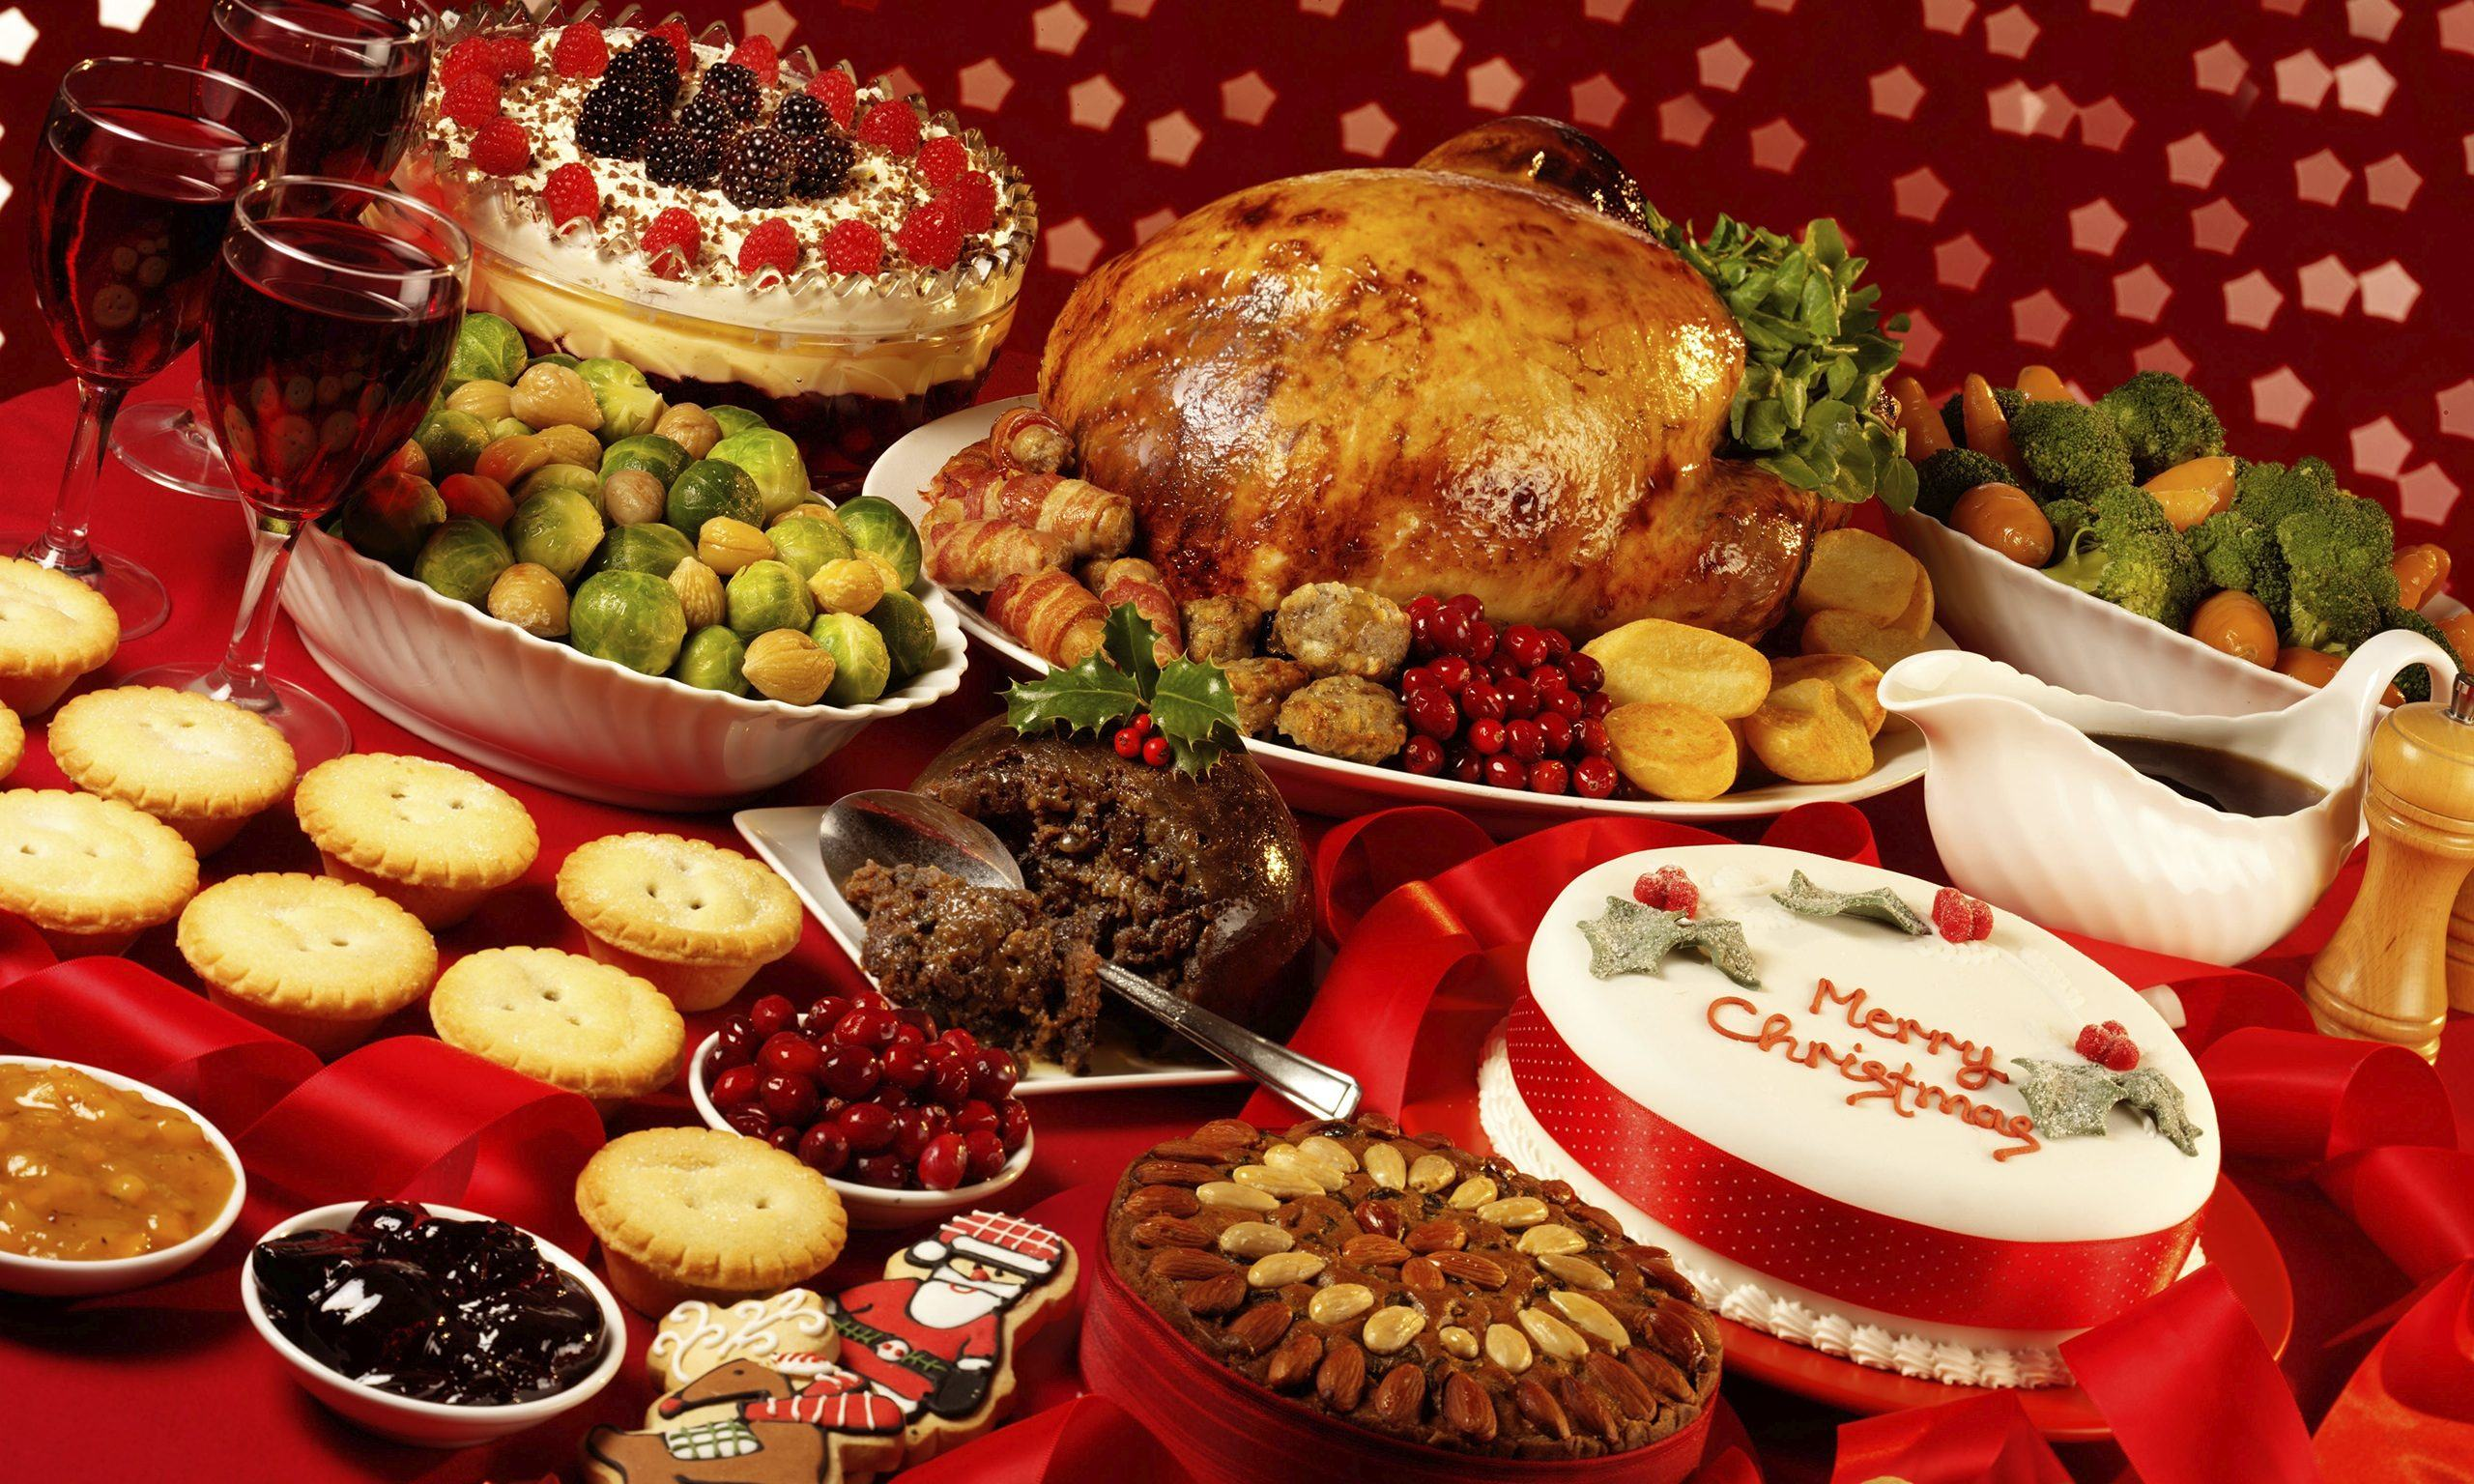 Traditional Christmas food in a red tablecloth